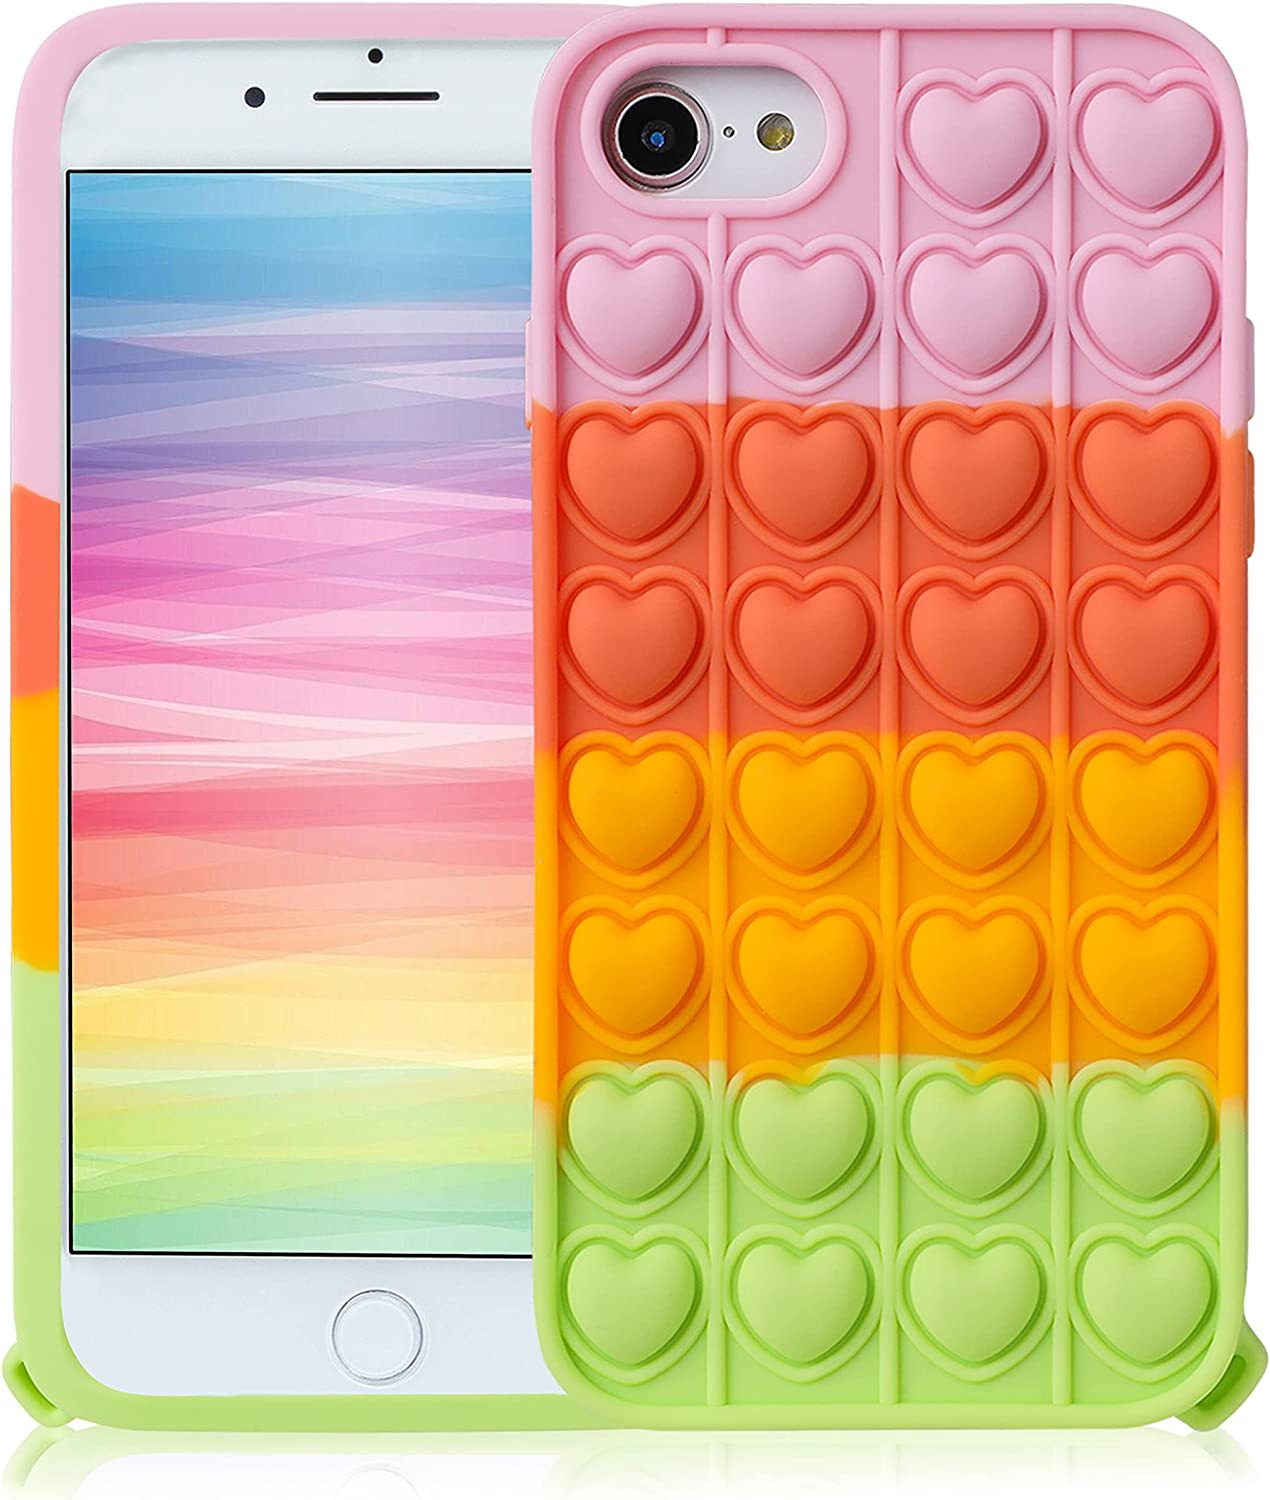 JoySolar Pink Heart for iPhone 6/6S/7/8/SE 2020 Case Silicone CaseDesign Cartoon Funny Cute Unique Fidget Aesthetic Cover Cases for Boys Girls Youth((for iPhone 6/6S/7/8/SE 2020 4.7